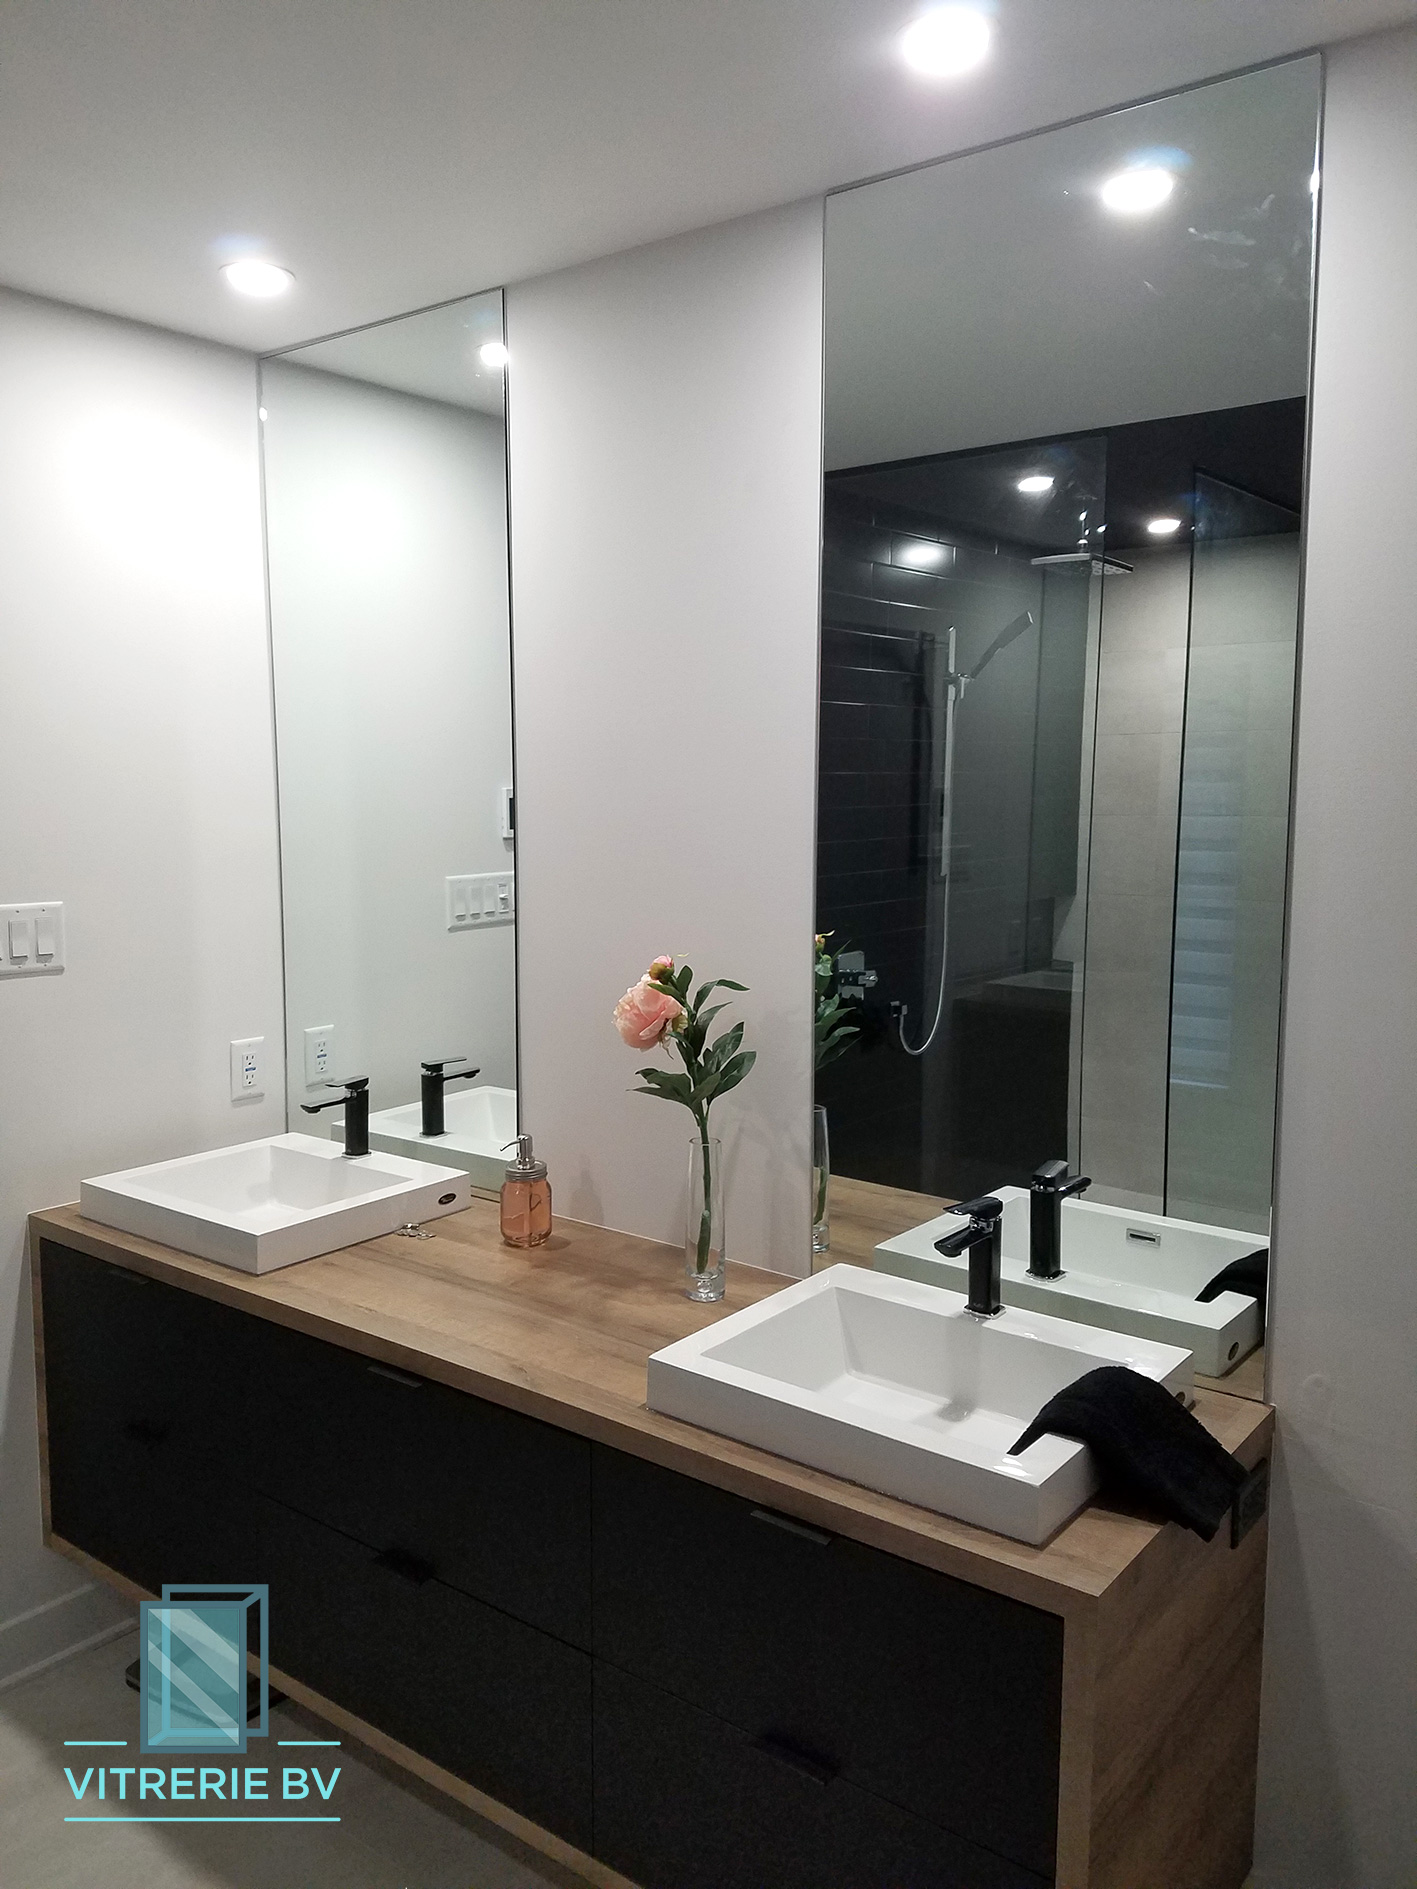 Superb Custom Mirrors And Bathroom Mirrors In Quebec Vitrerie Bv Download Free Architecture Designs Sospemadebymaigaardcom